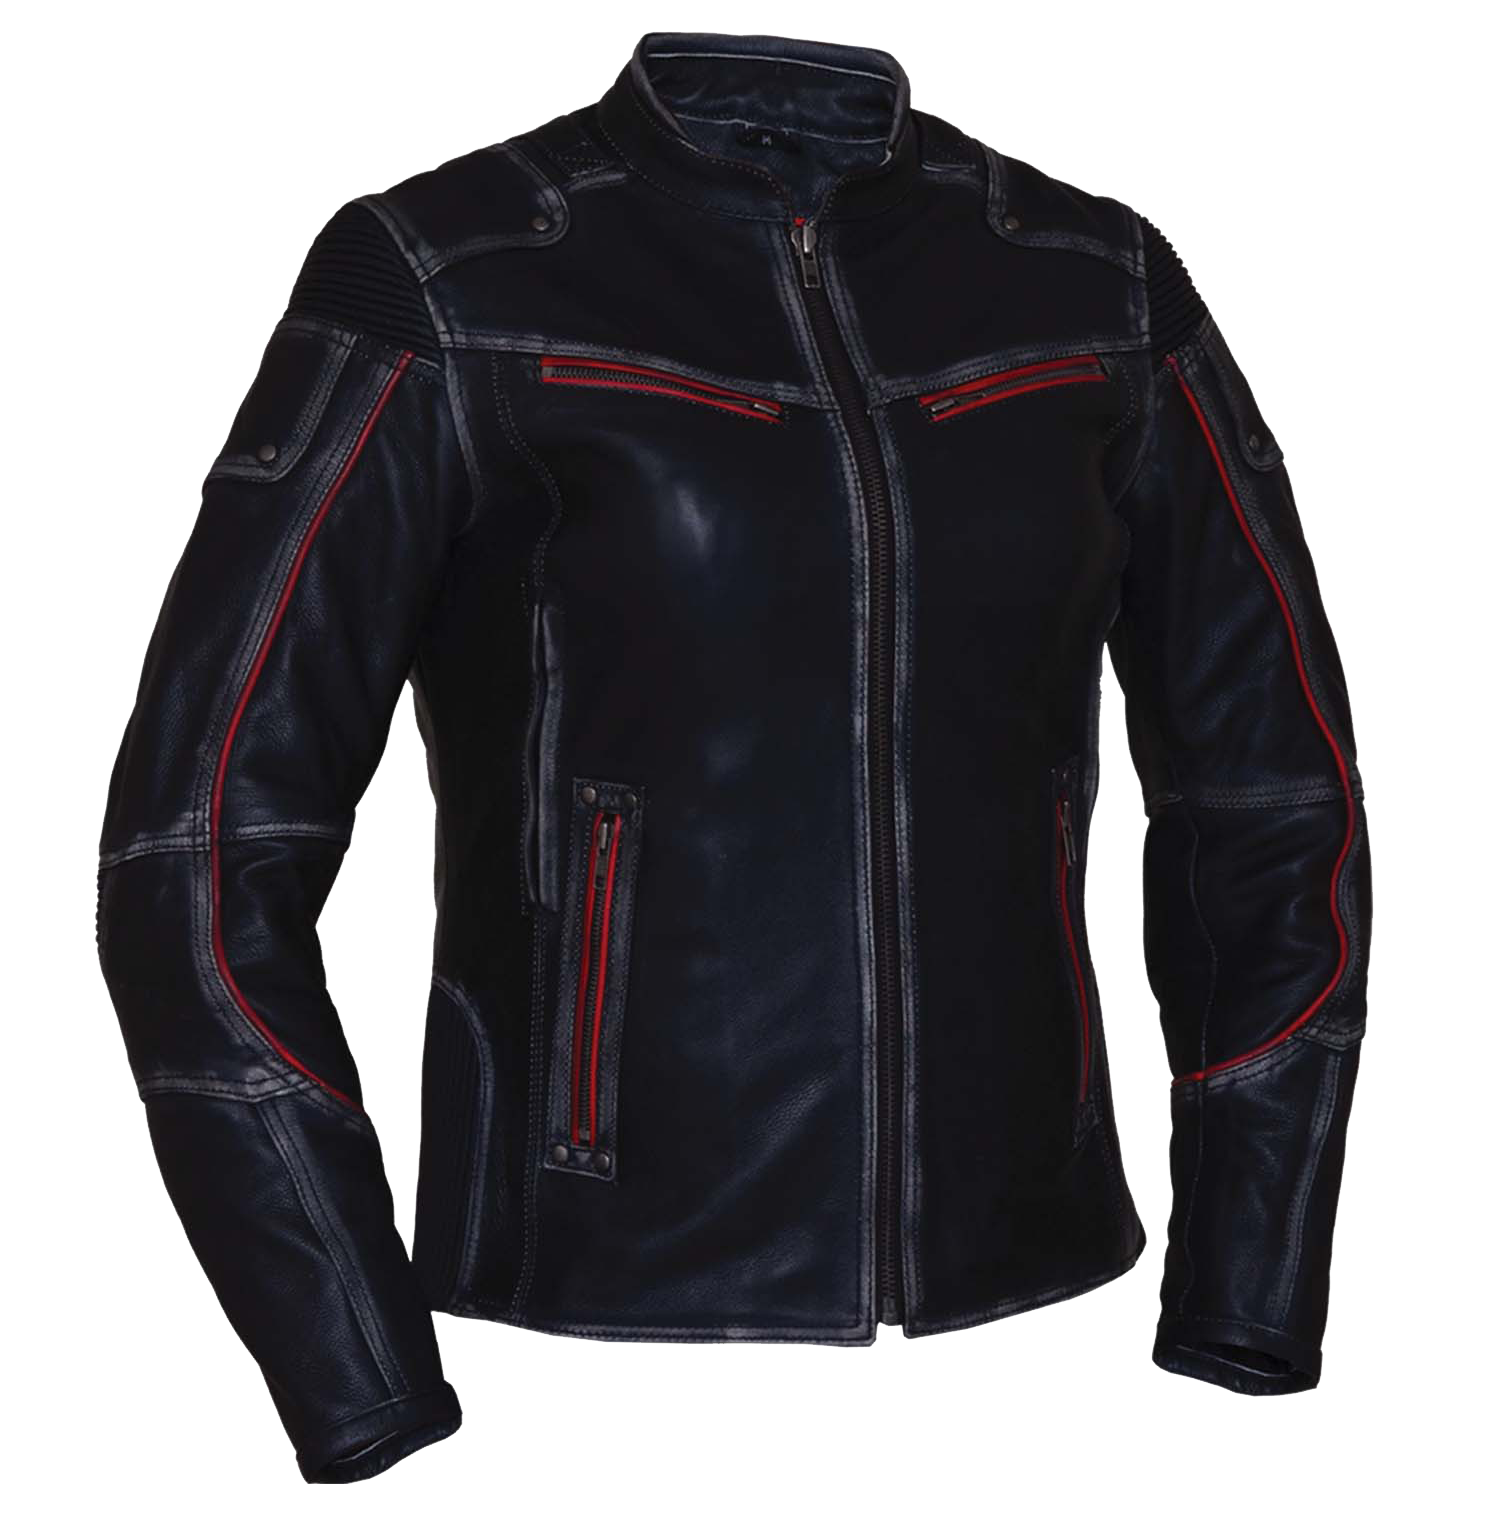 Ladies Black With Red Trim Durango Leather Jacket with Concealed Carry Pockets - SKU 6833-01-UN